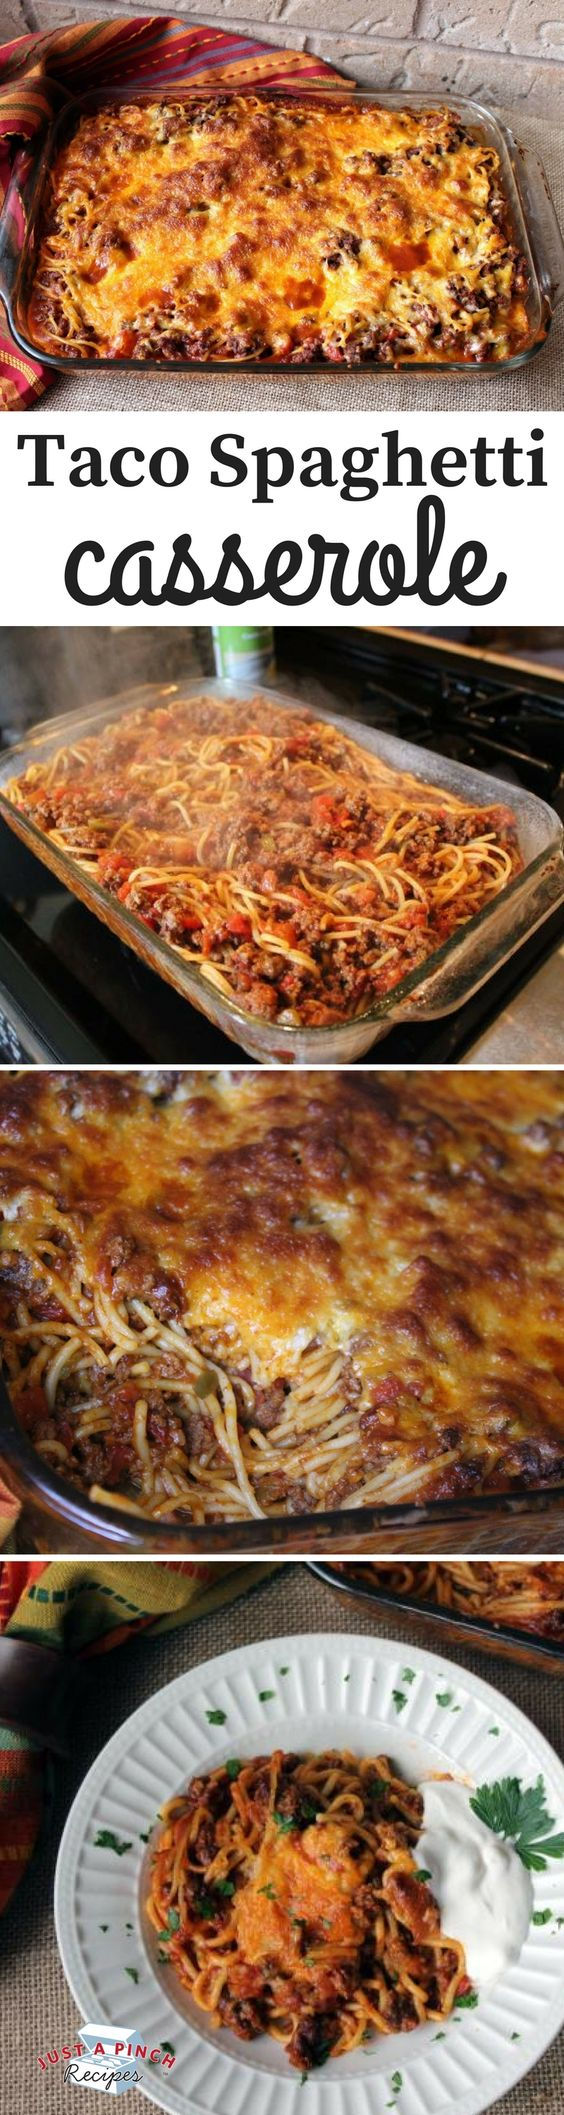 An easy prep casserole that cooks in one pot before it is baked.: